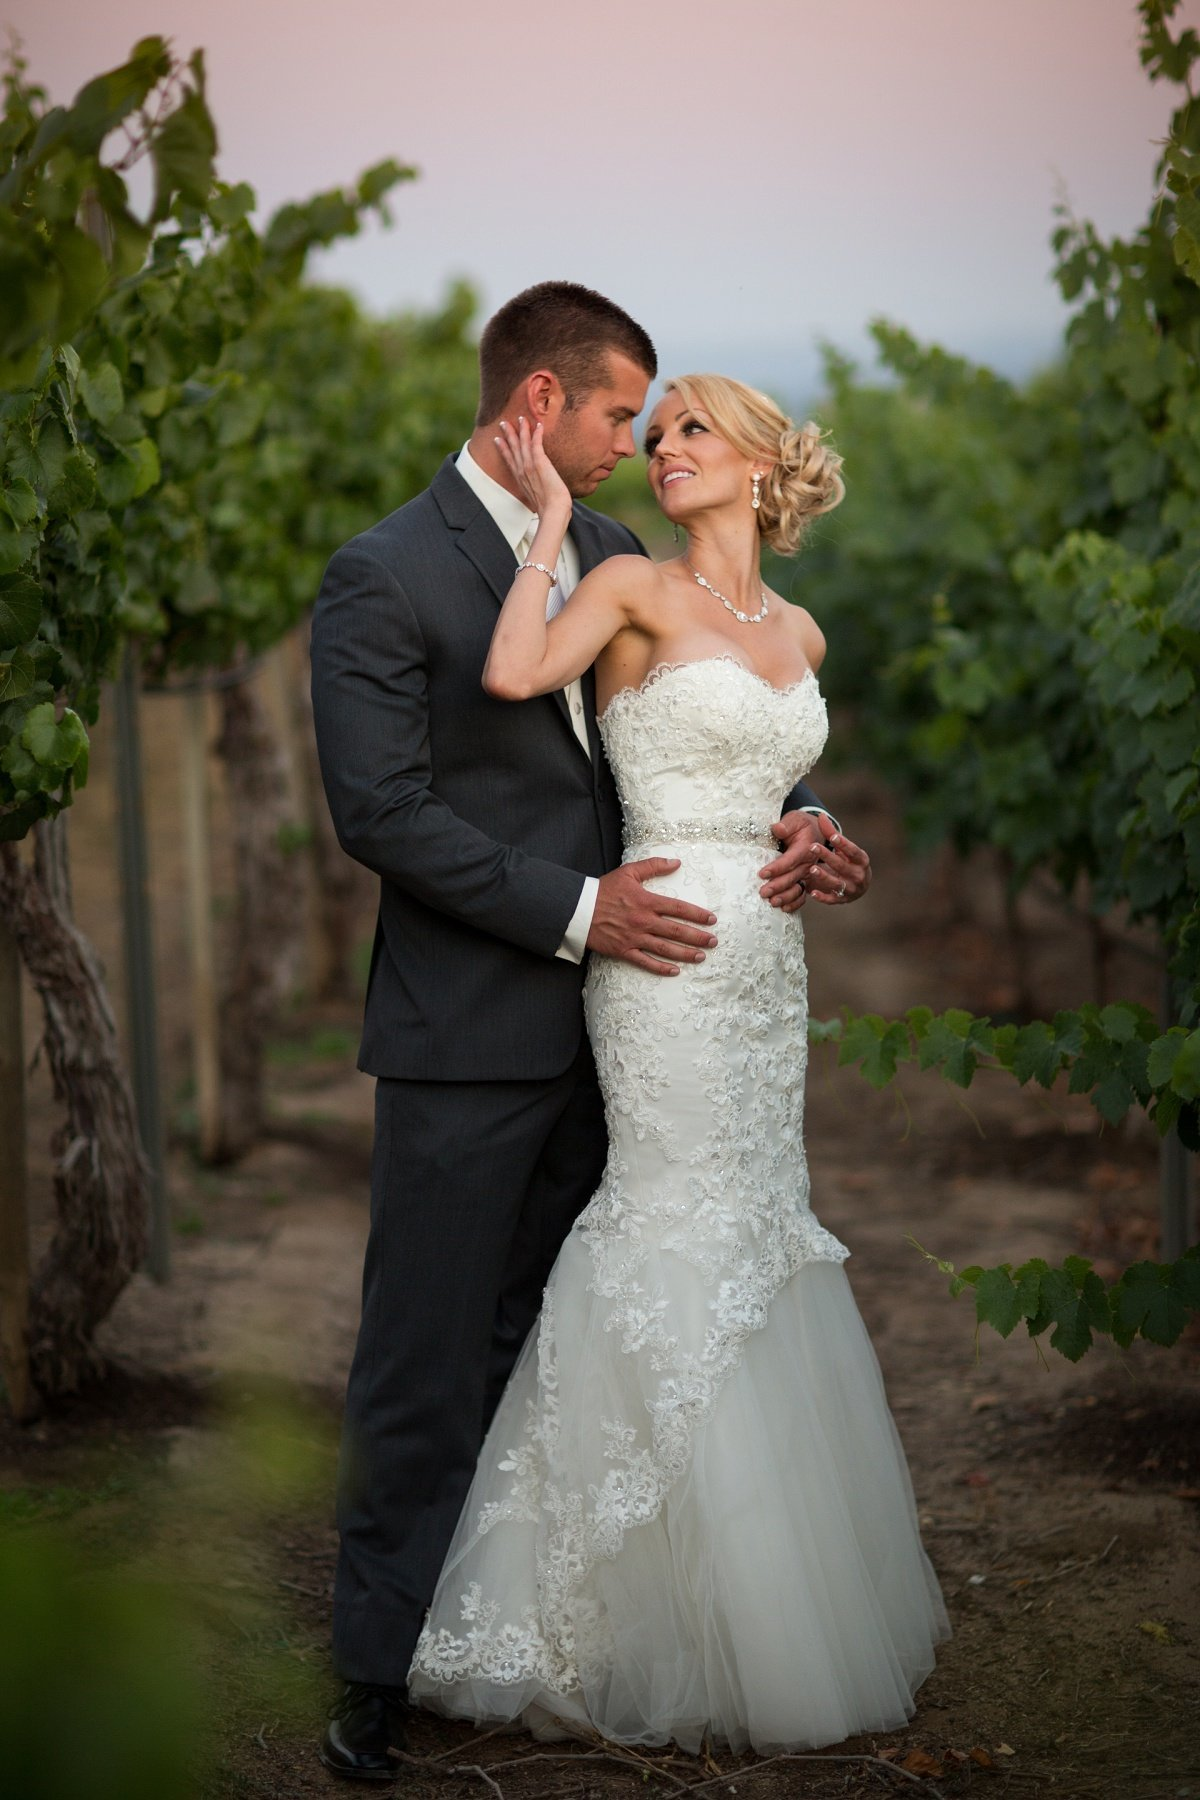 Orange County Wedding Photographer & Los Angeles Wedding Photography Wedding Photos Wiens Winery by Three16 Photography